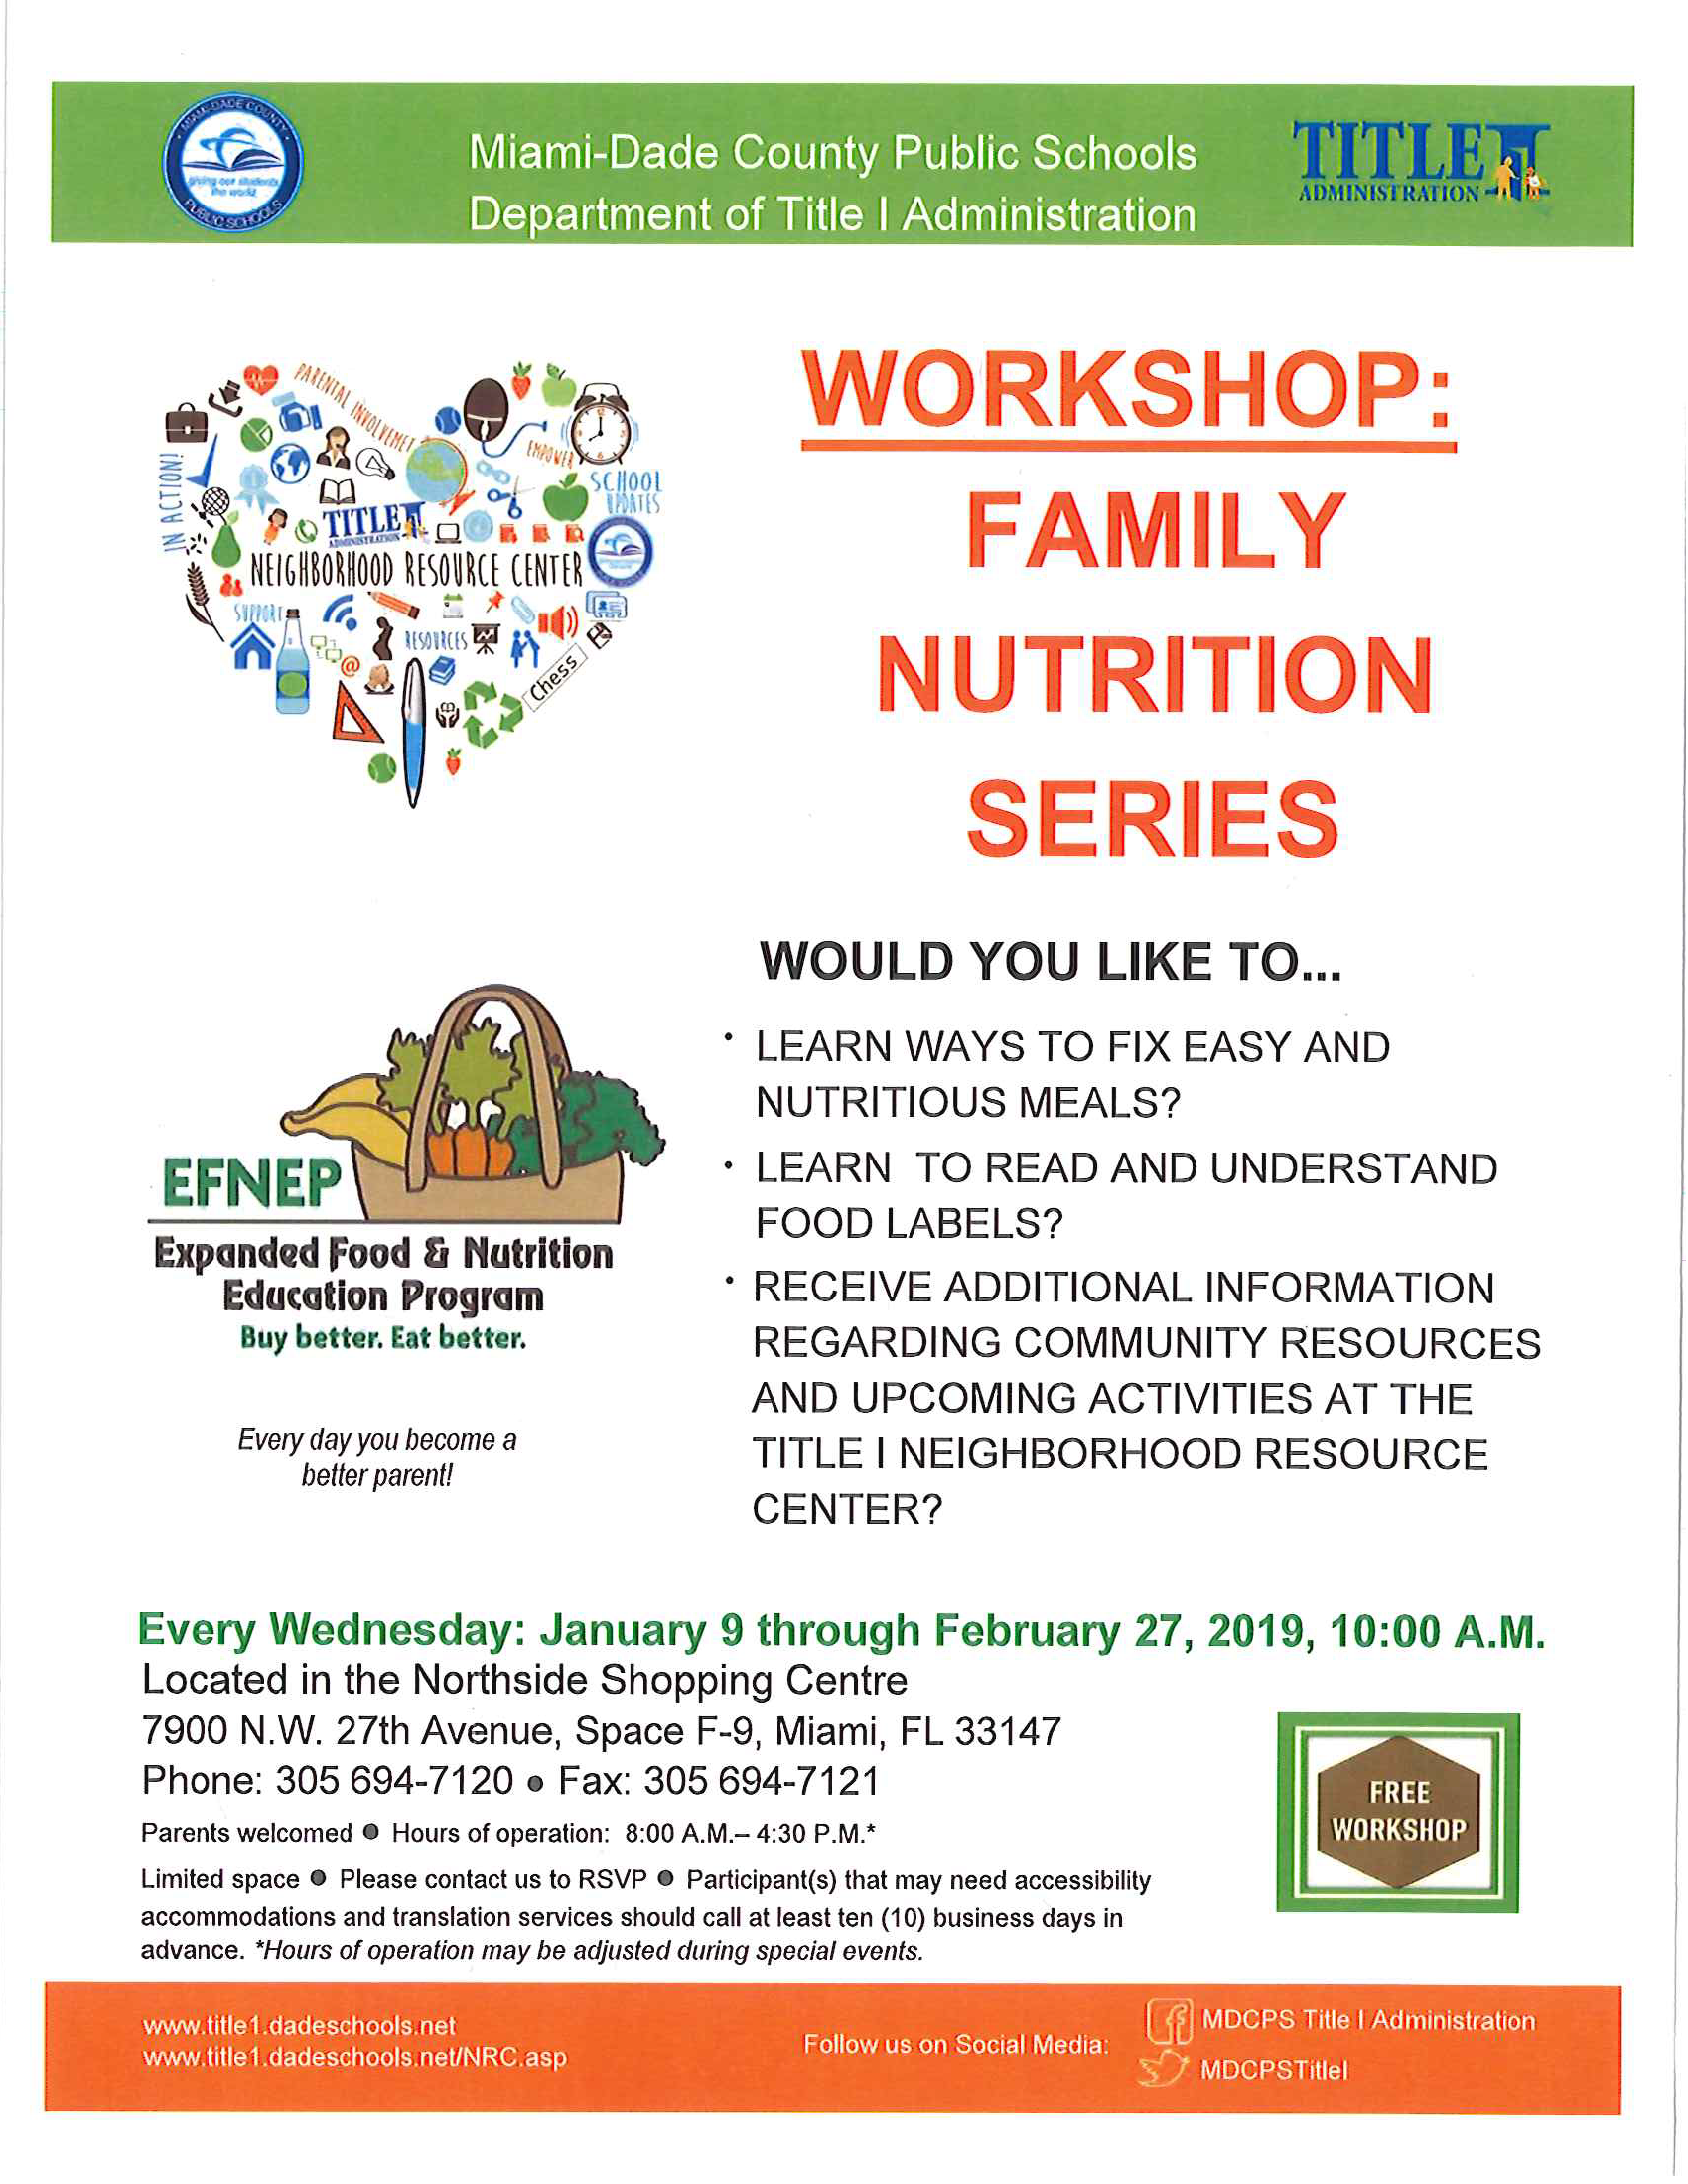 WORKSHOP: FAMILY NUTRITION SERIES @ Located in the Northside Shopping Centre